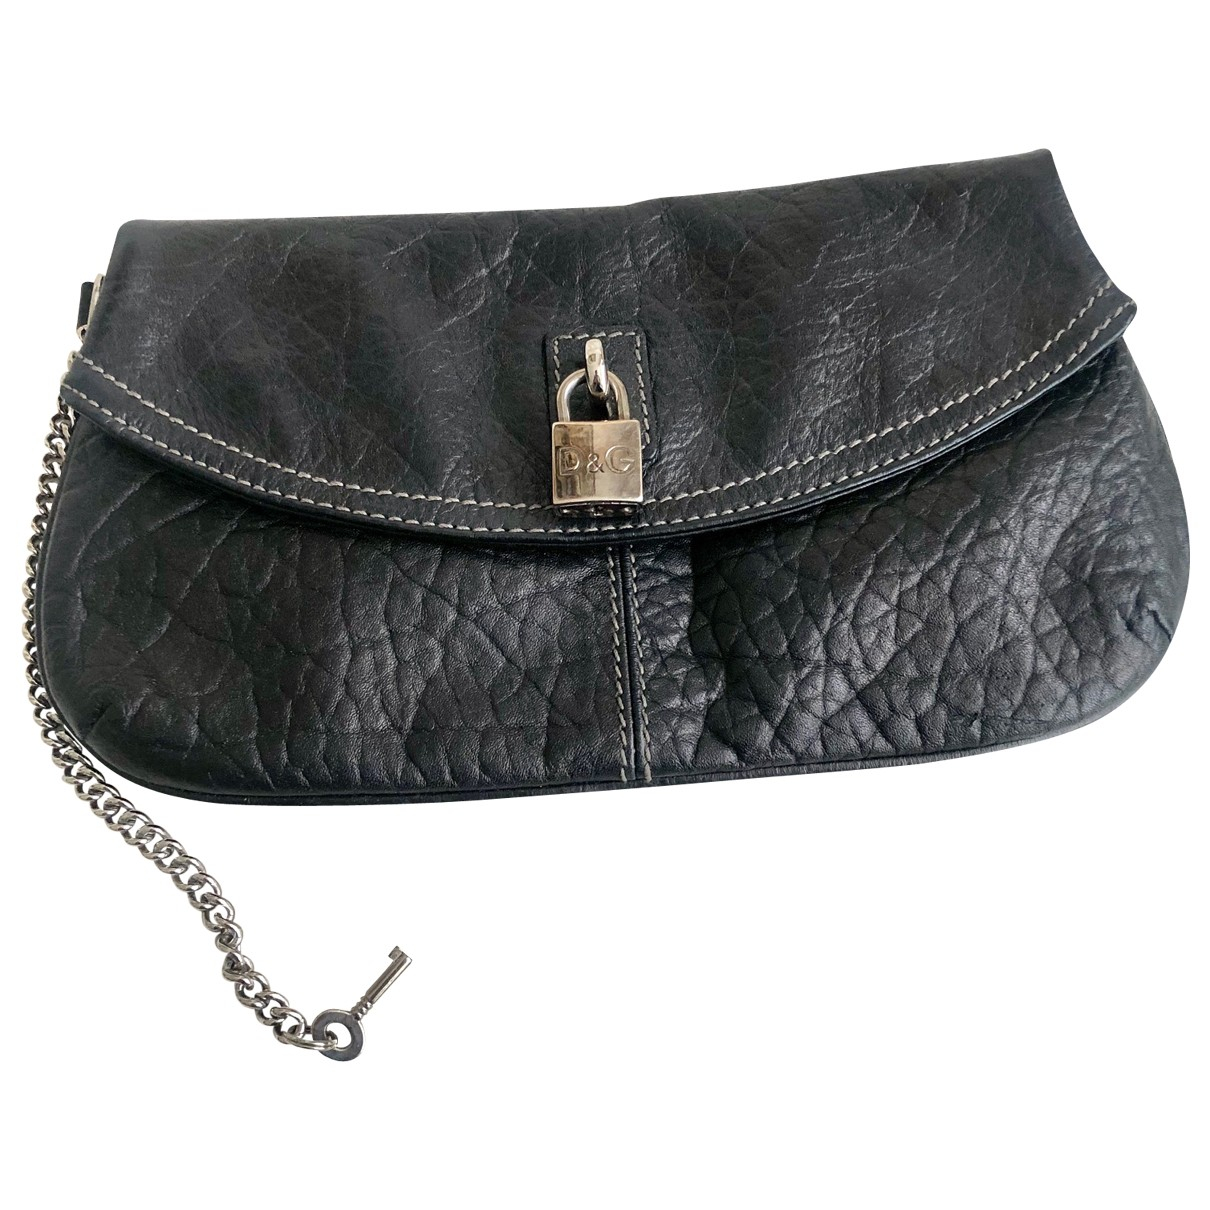 D&g \N Clutch in  Schwarz Leder